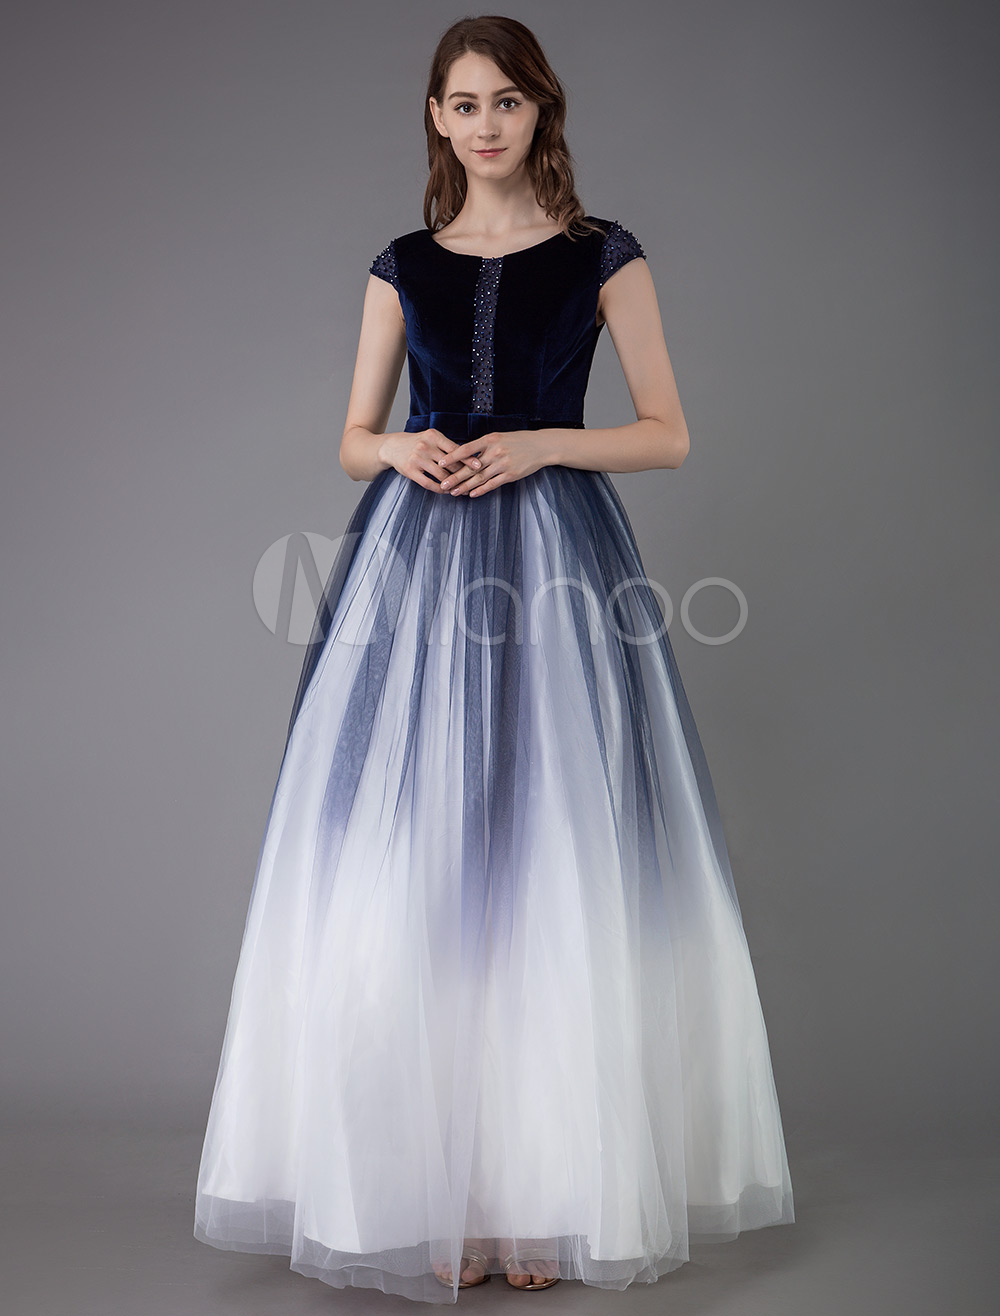 Prom Dress 2020 Tulle Ball Gown Korean Velvet Jewel Neck Floor Length  Social Princess Party Dinner Dresses